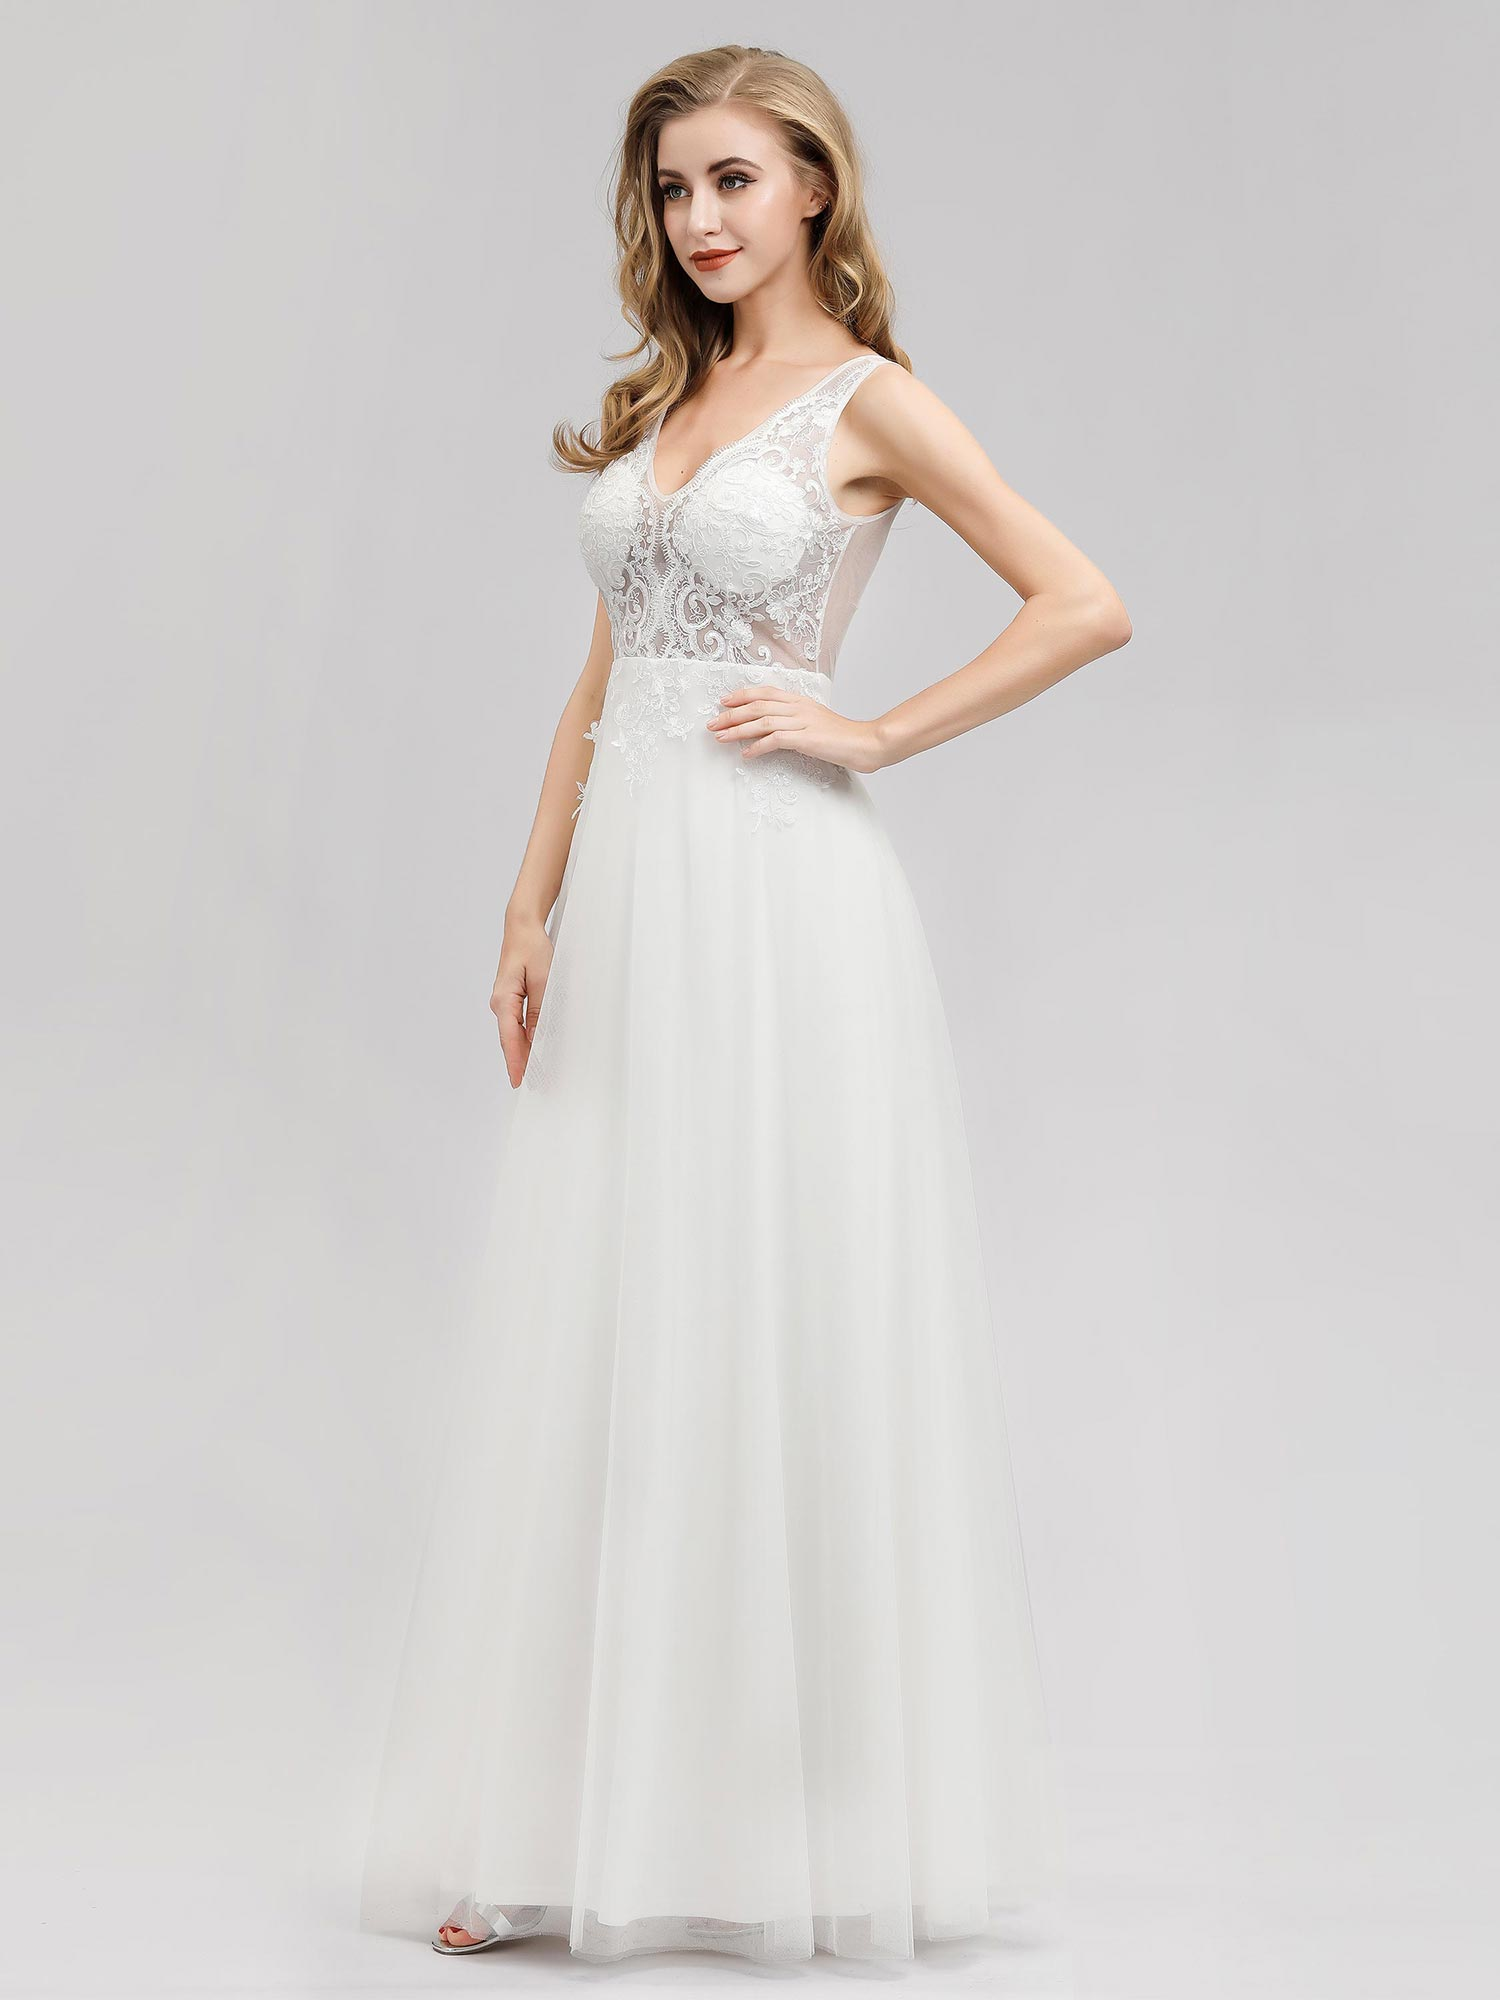 Ever-pretty-Sleeveless-Formal-Lace-Evening-Party-Dress-Cocktail-Homecoming-Prom thumbnail 7